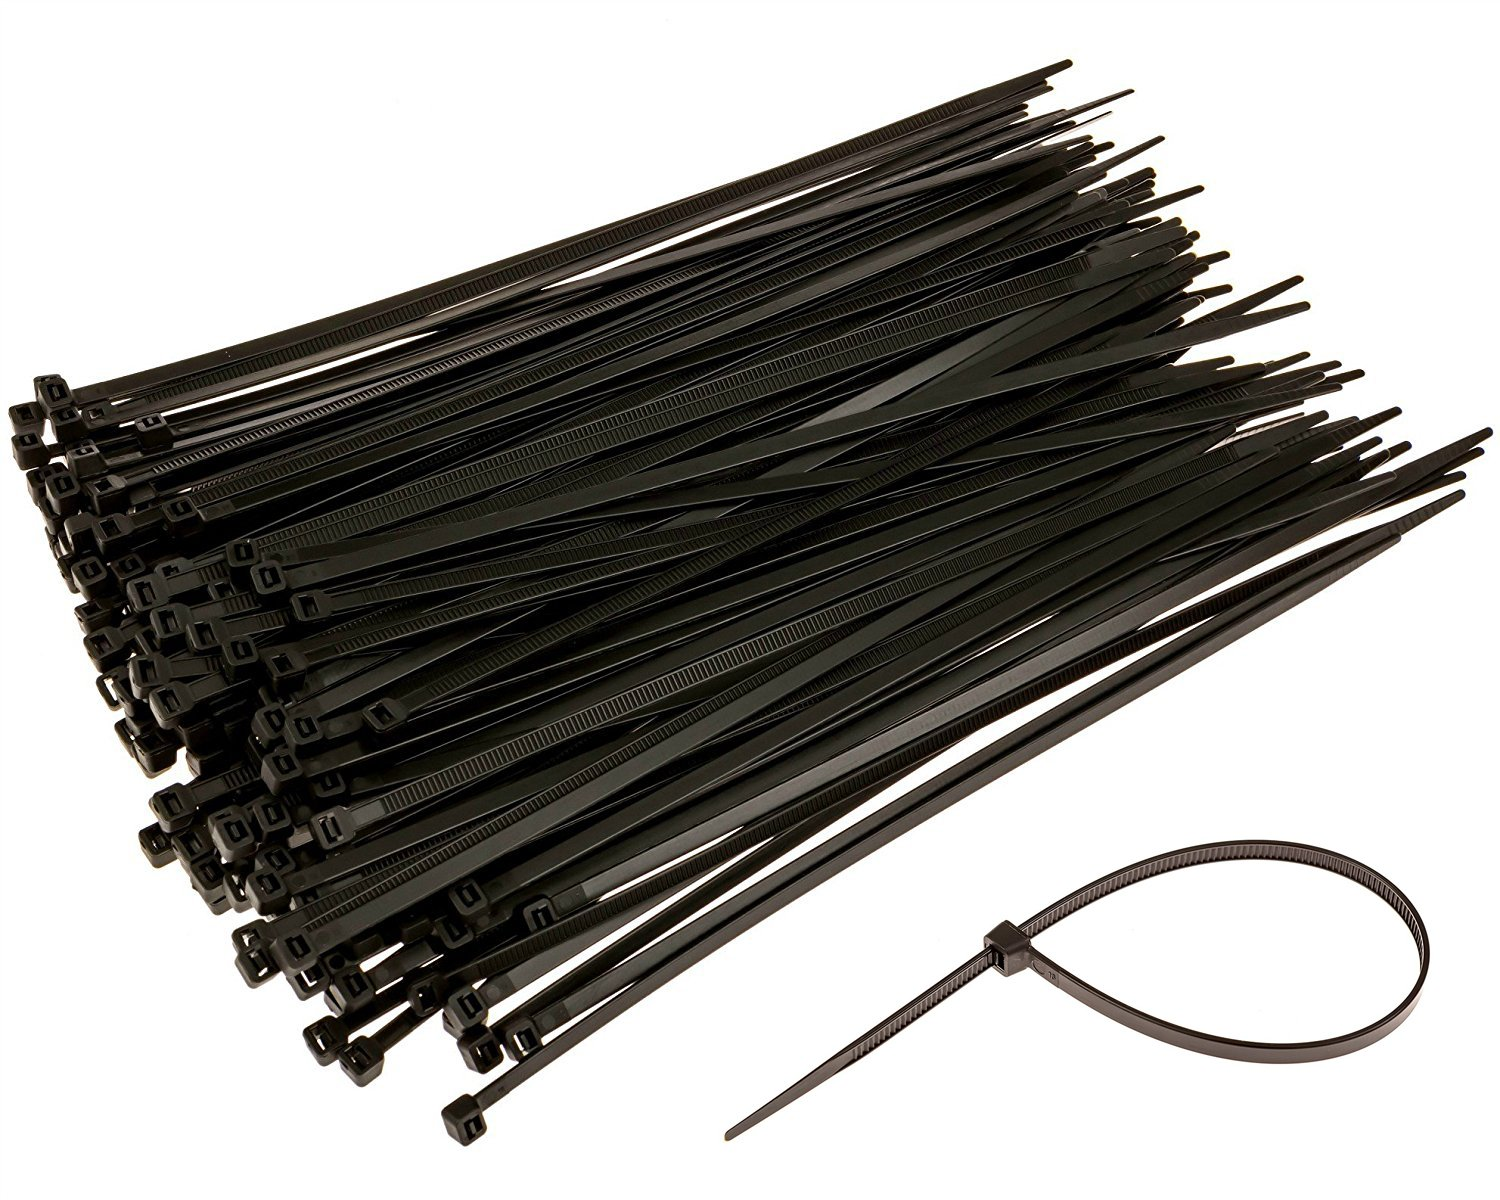 2e8a07e5f8c2 Amazon.com: 100 Pieces Nylon Cable Ties 6 Inch Self-locking Zip Ties  Plastic Straps (black): Sports & Outdoors